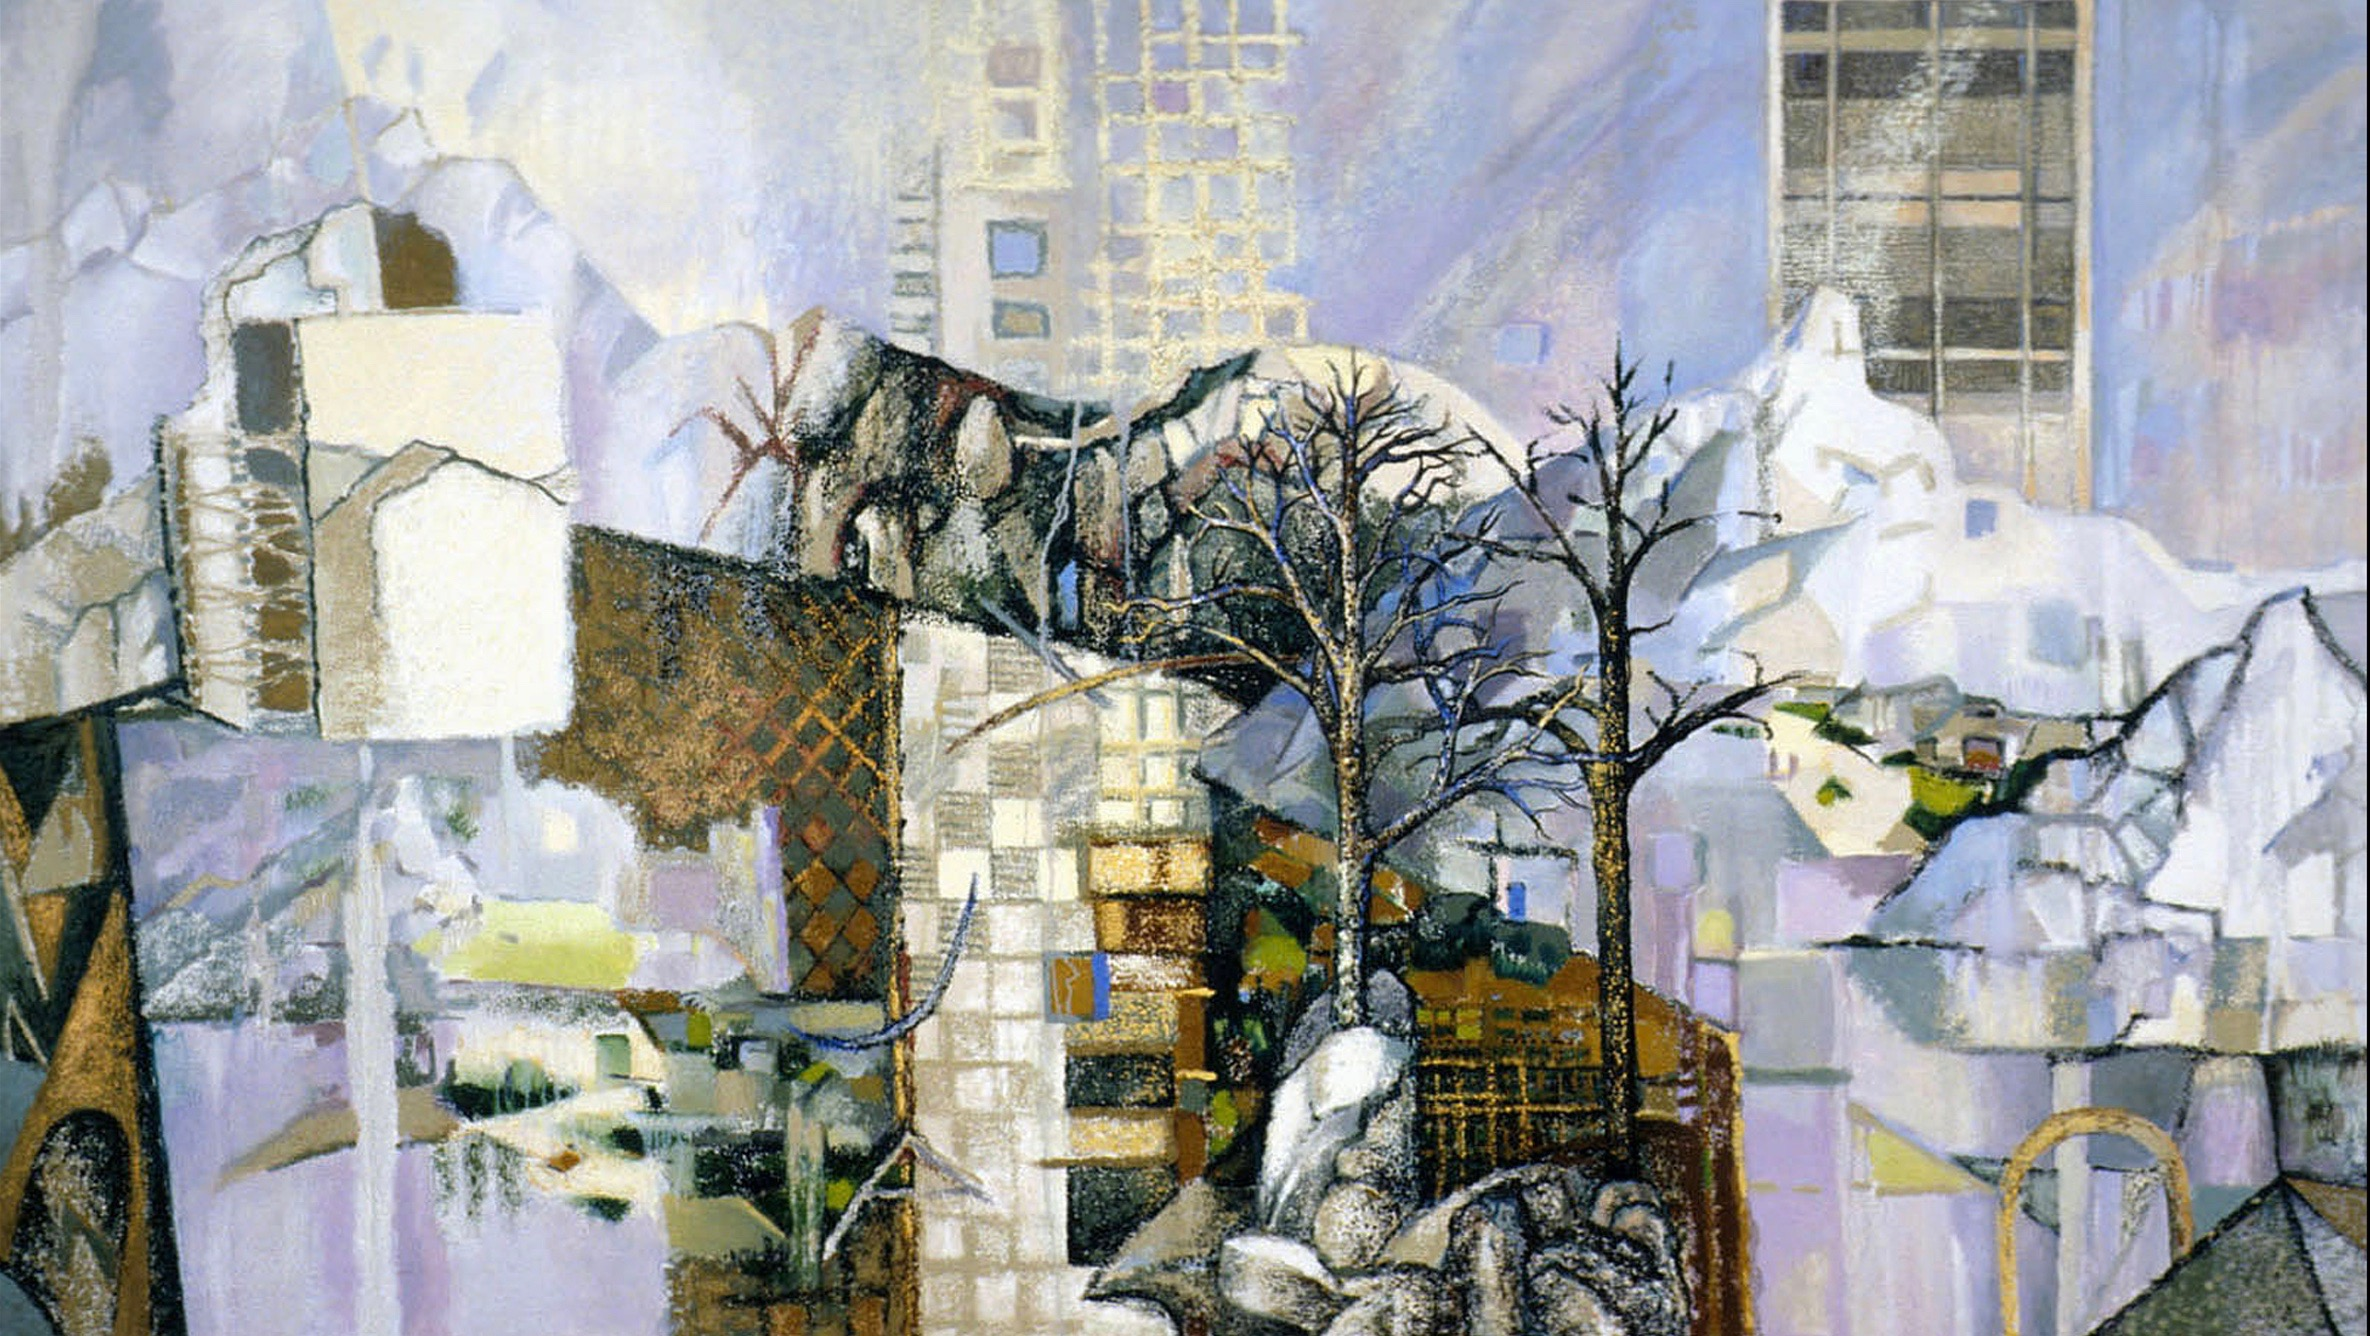 Mt. Ste Victoire: Homage to Cezanne and Anni Albers, oil stick and oils on canvas, 49 x 86 inches, 2003